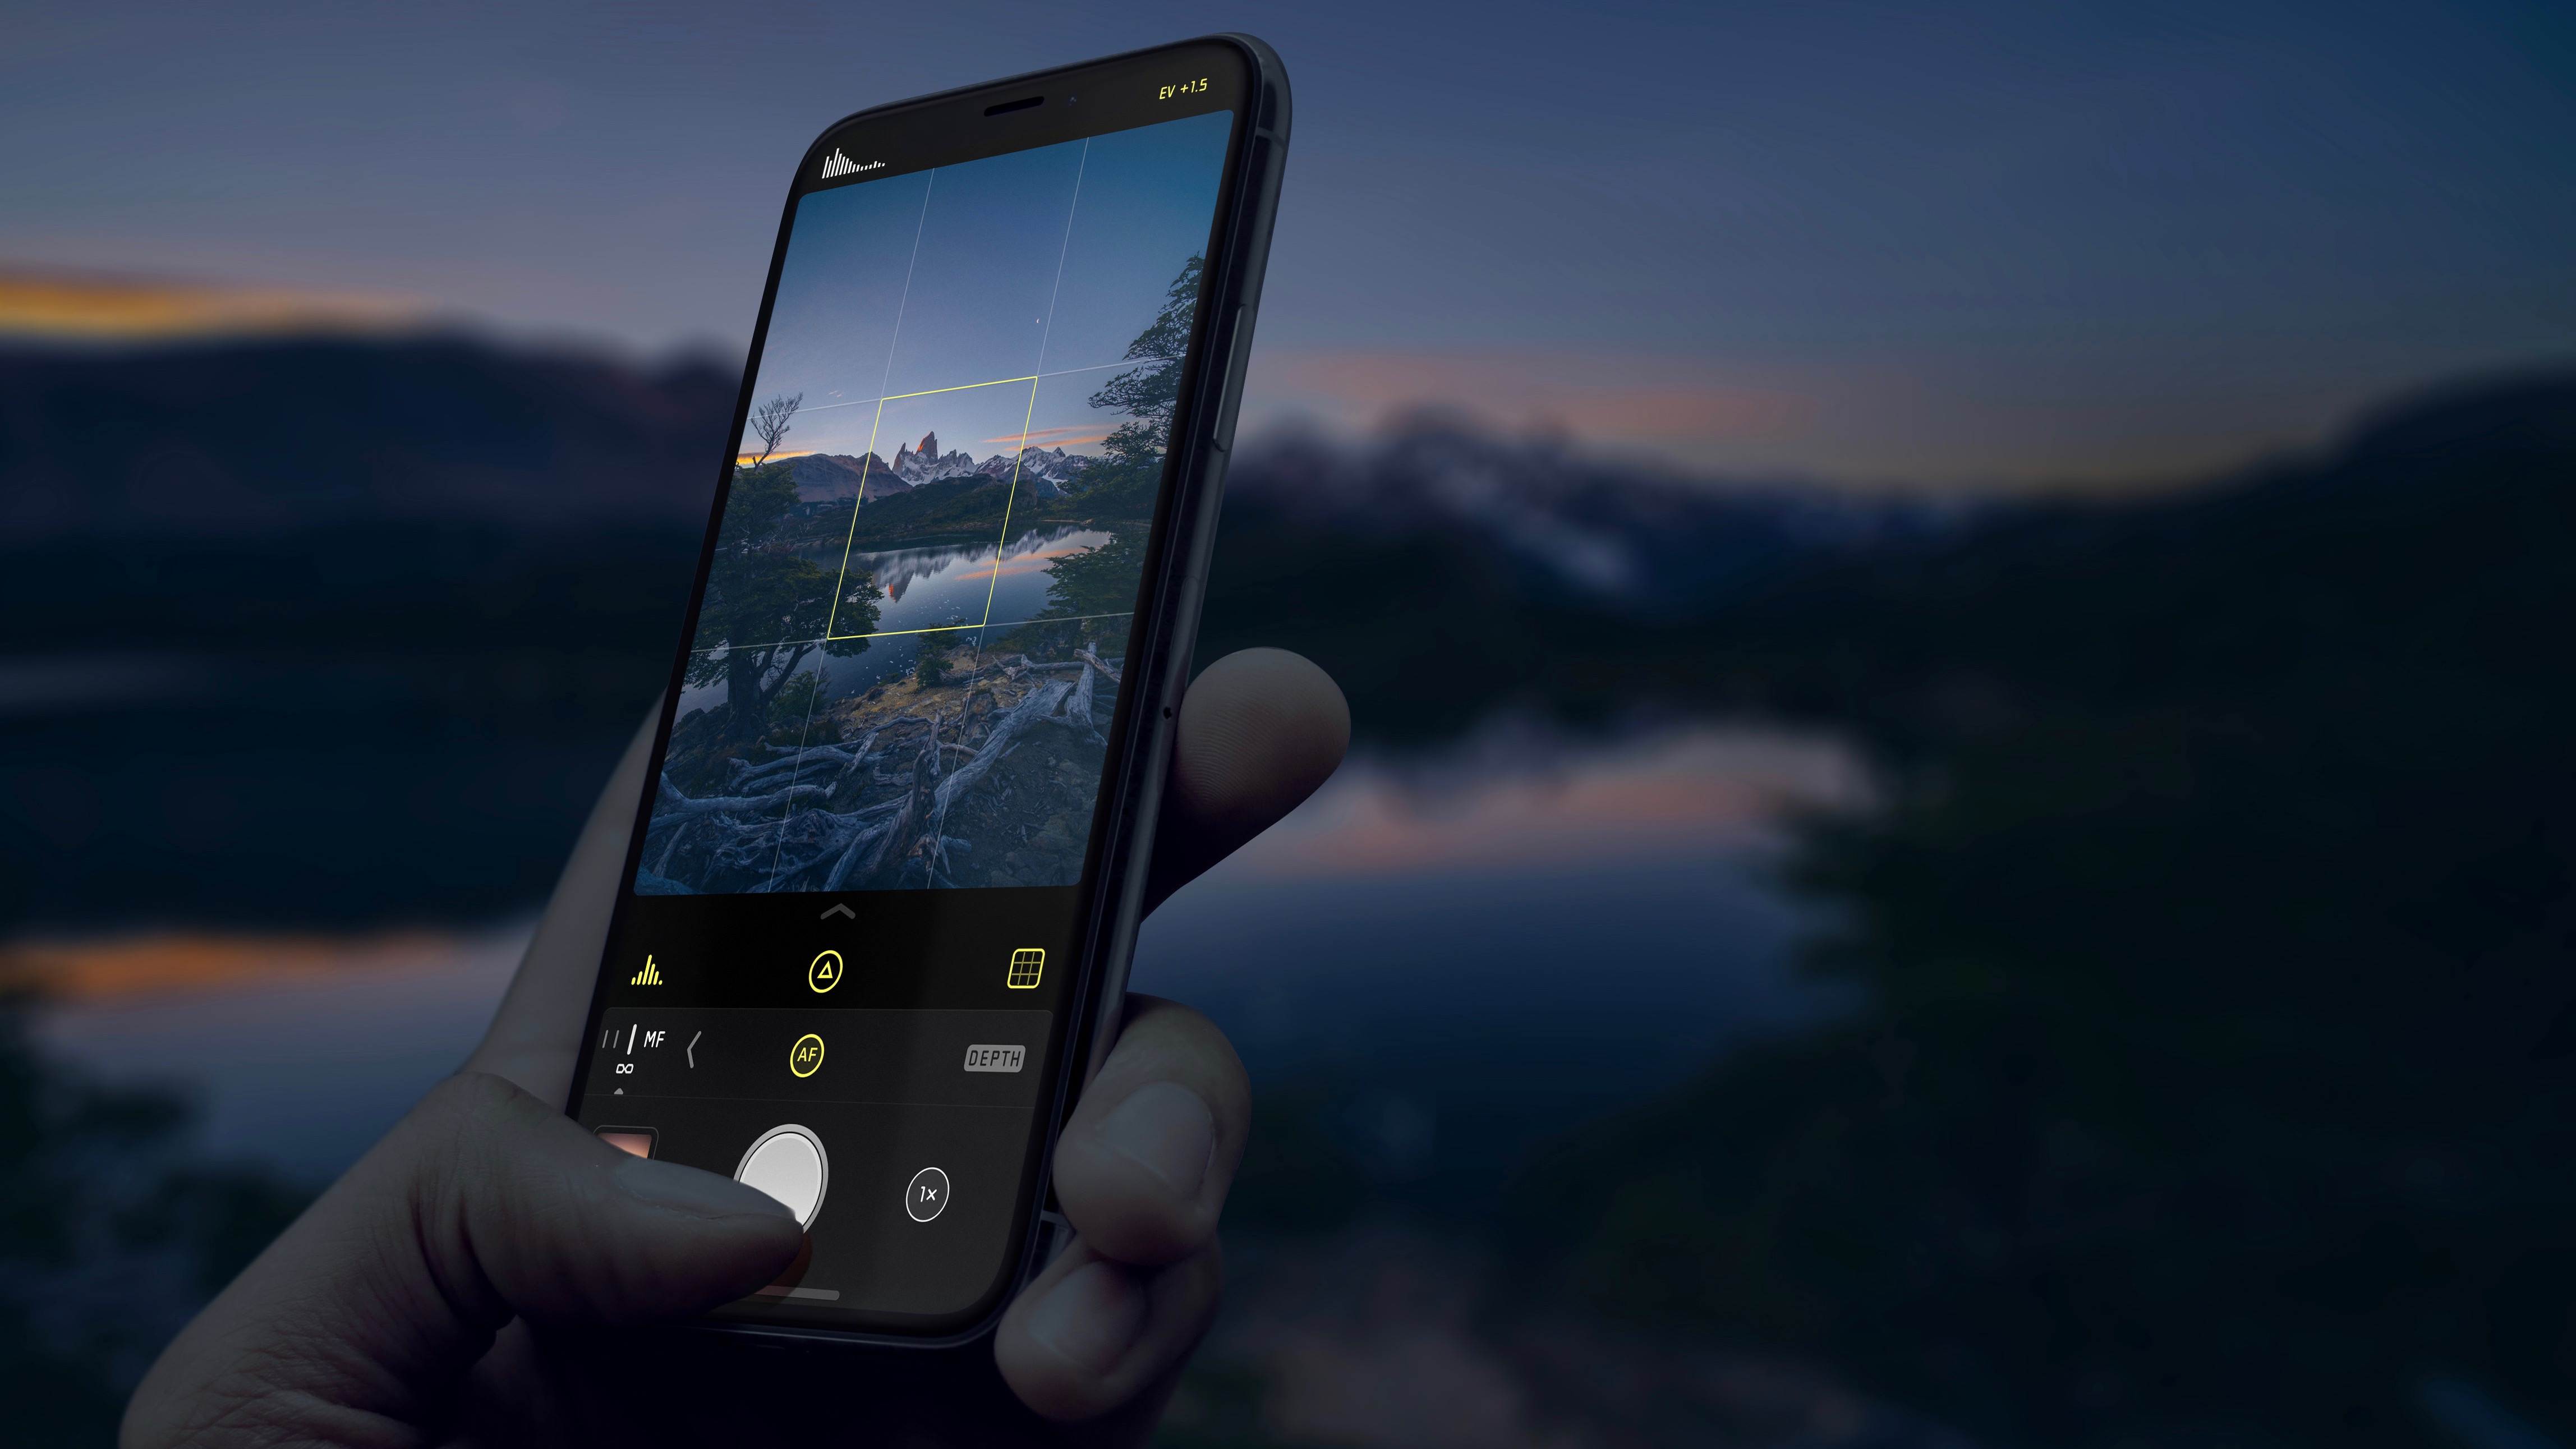 Designer behind Halide explains why you might enjoy RAW photography on your iPhone